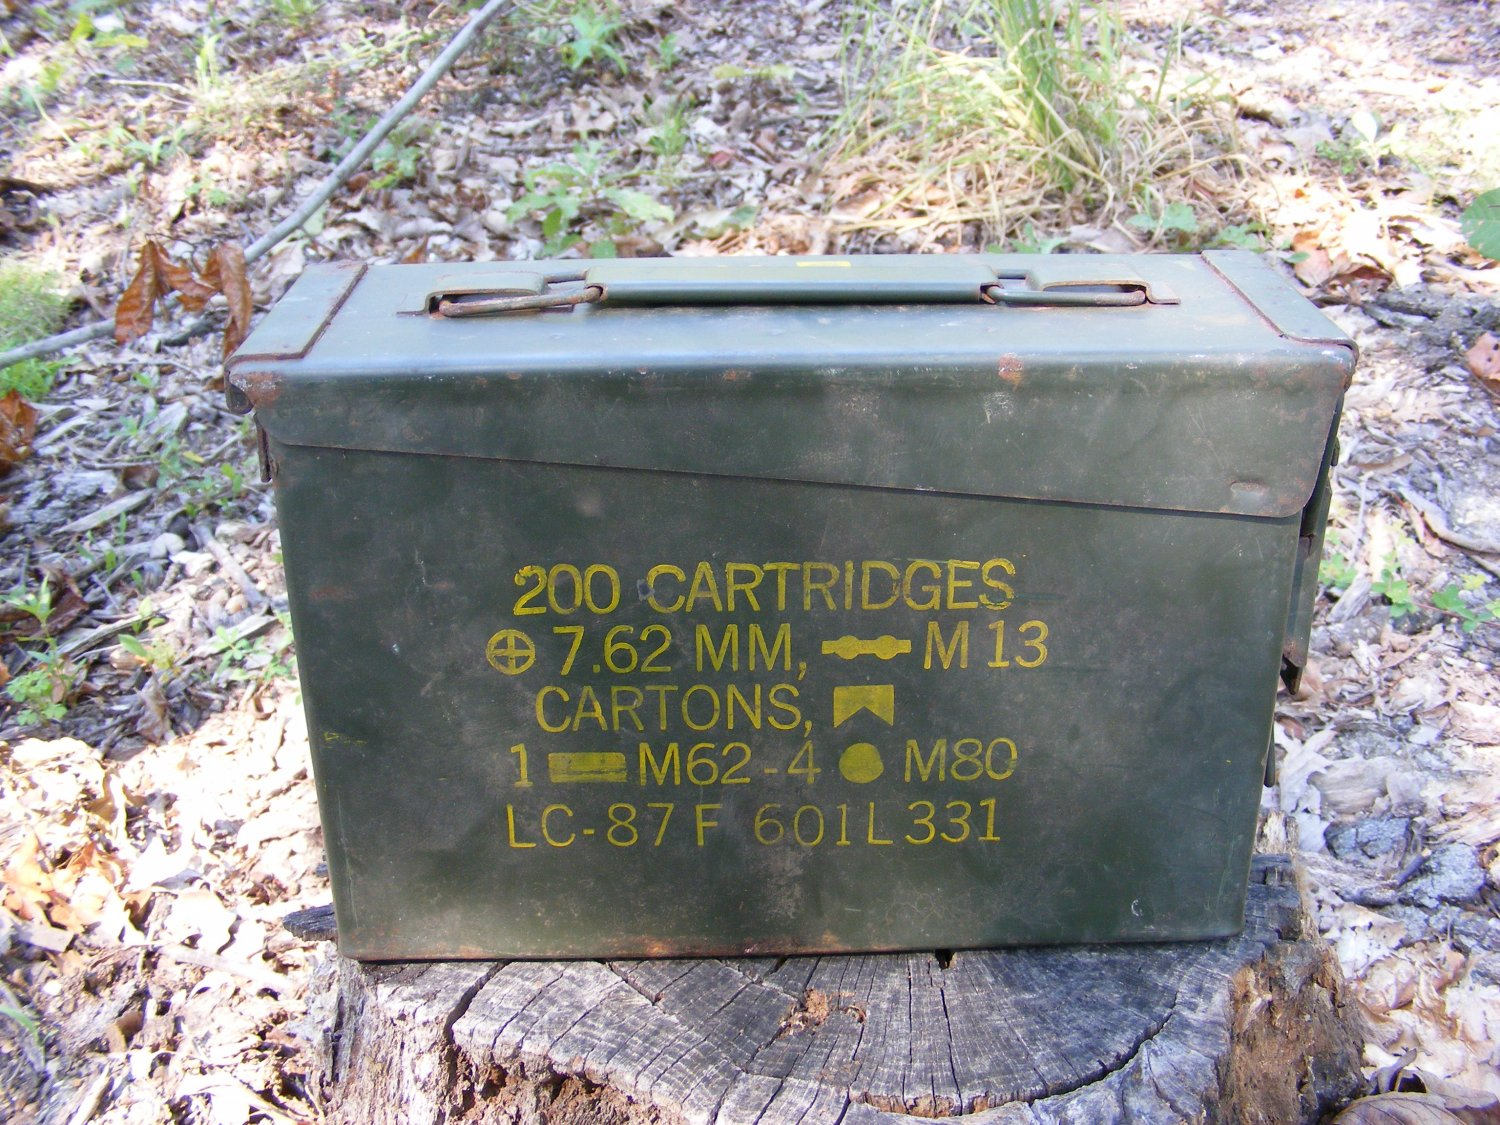 30 Caliber Ammo Boxes US Army Ammunition Can Geocaching Container